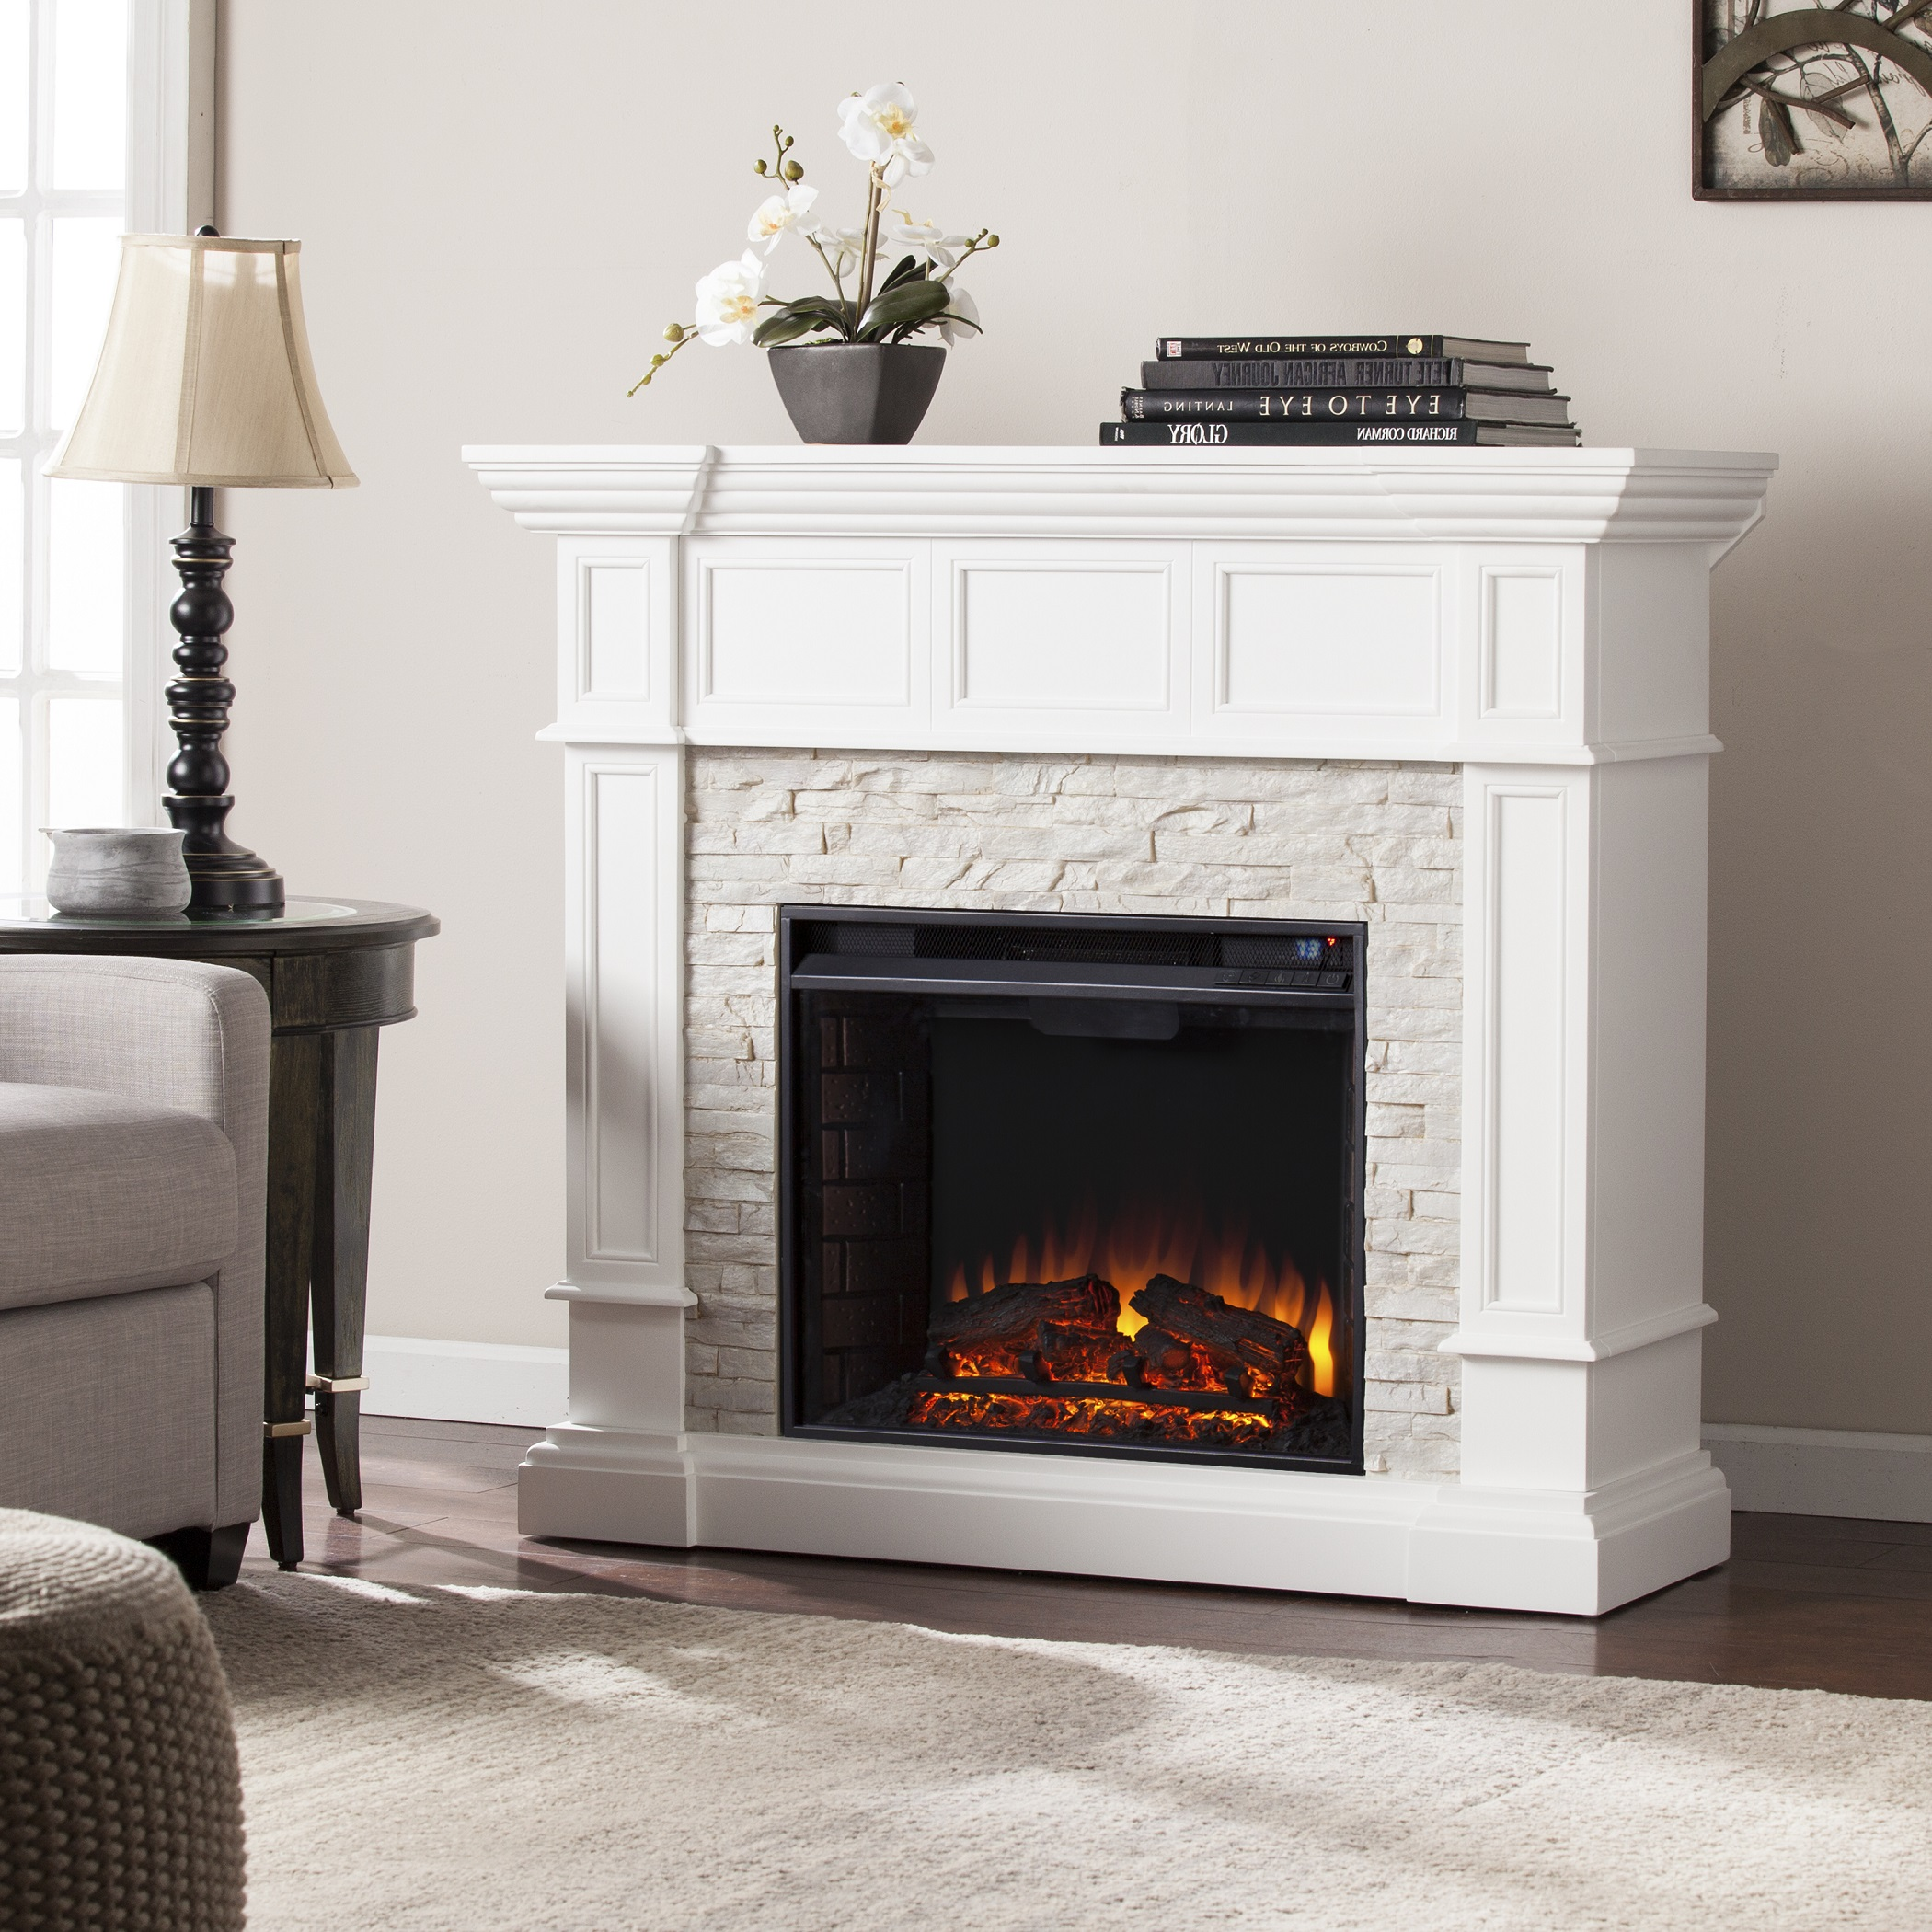 stoves com infrared white flat at furnishings w btu pl mdf loft heating cooling crisp fireplace boston electric fireplaces lowes in shop wall